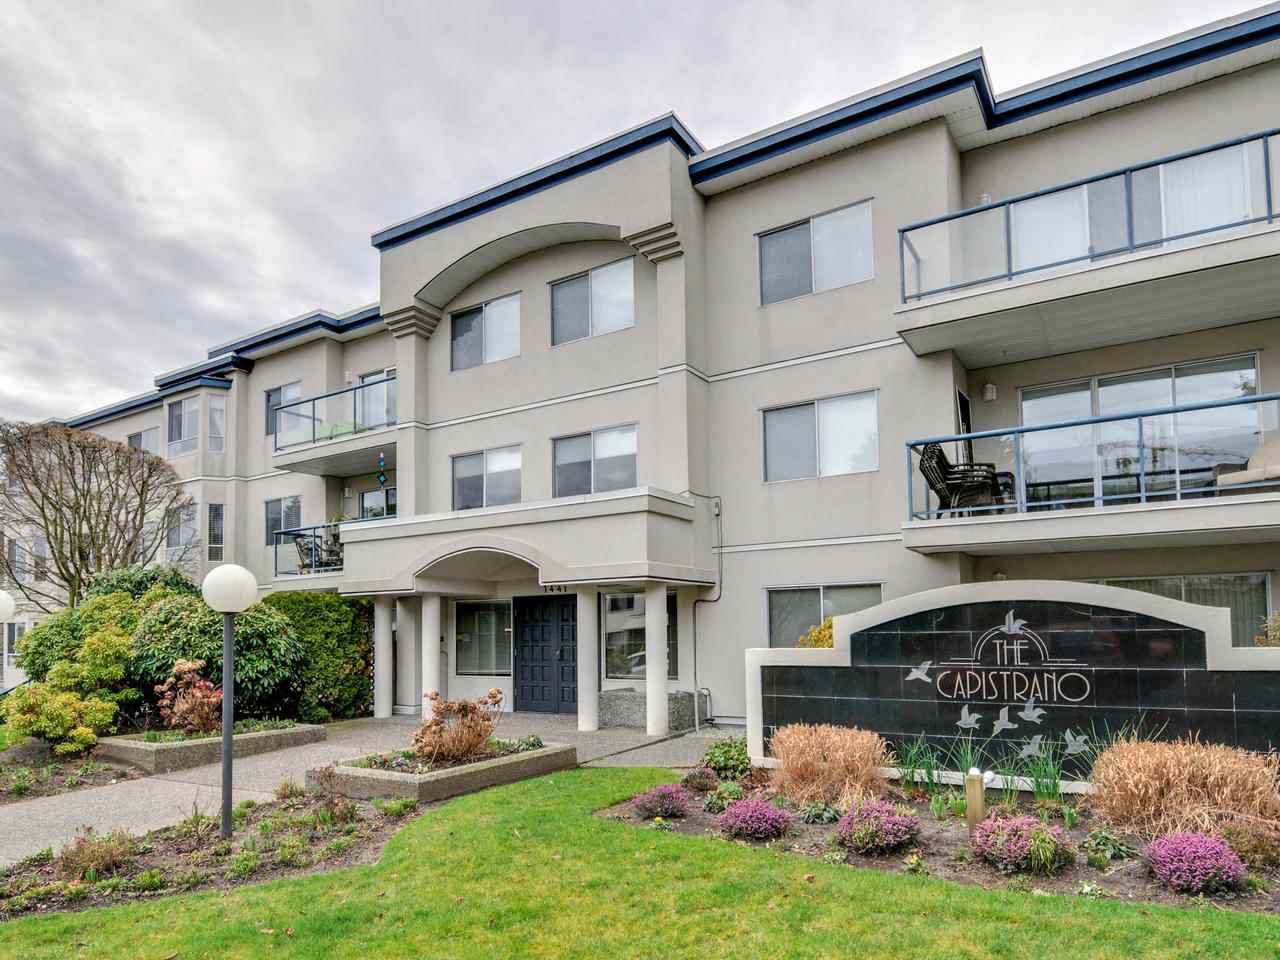 Units rarely come available in this small, sought after building!